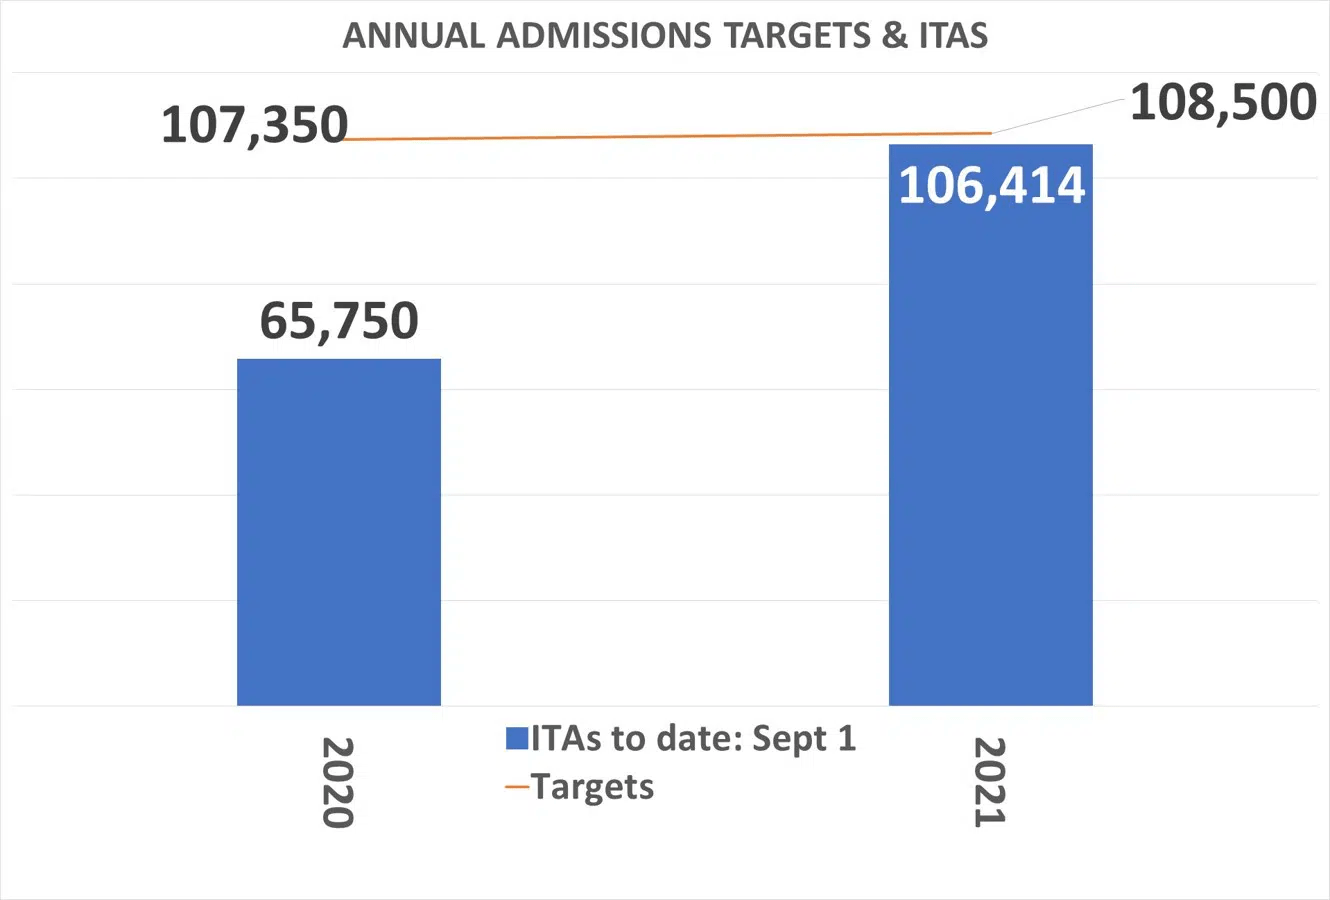 Annual-admission-targets-and-ITAs-sep-2021